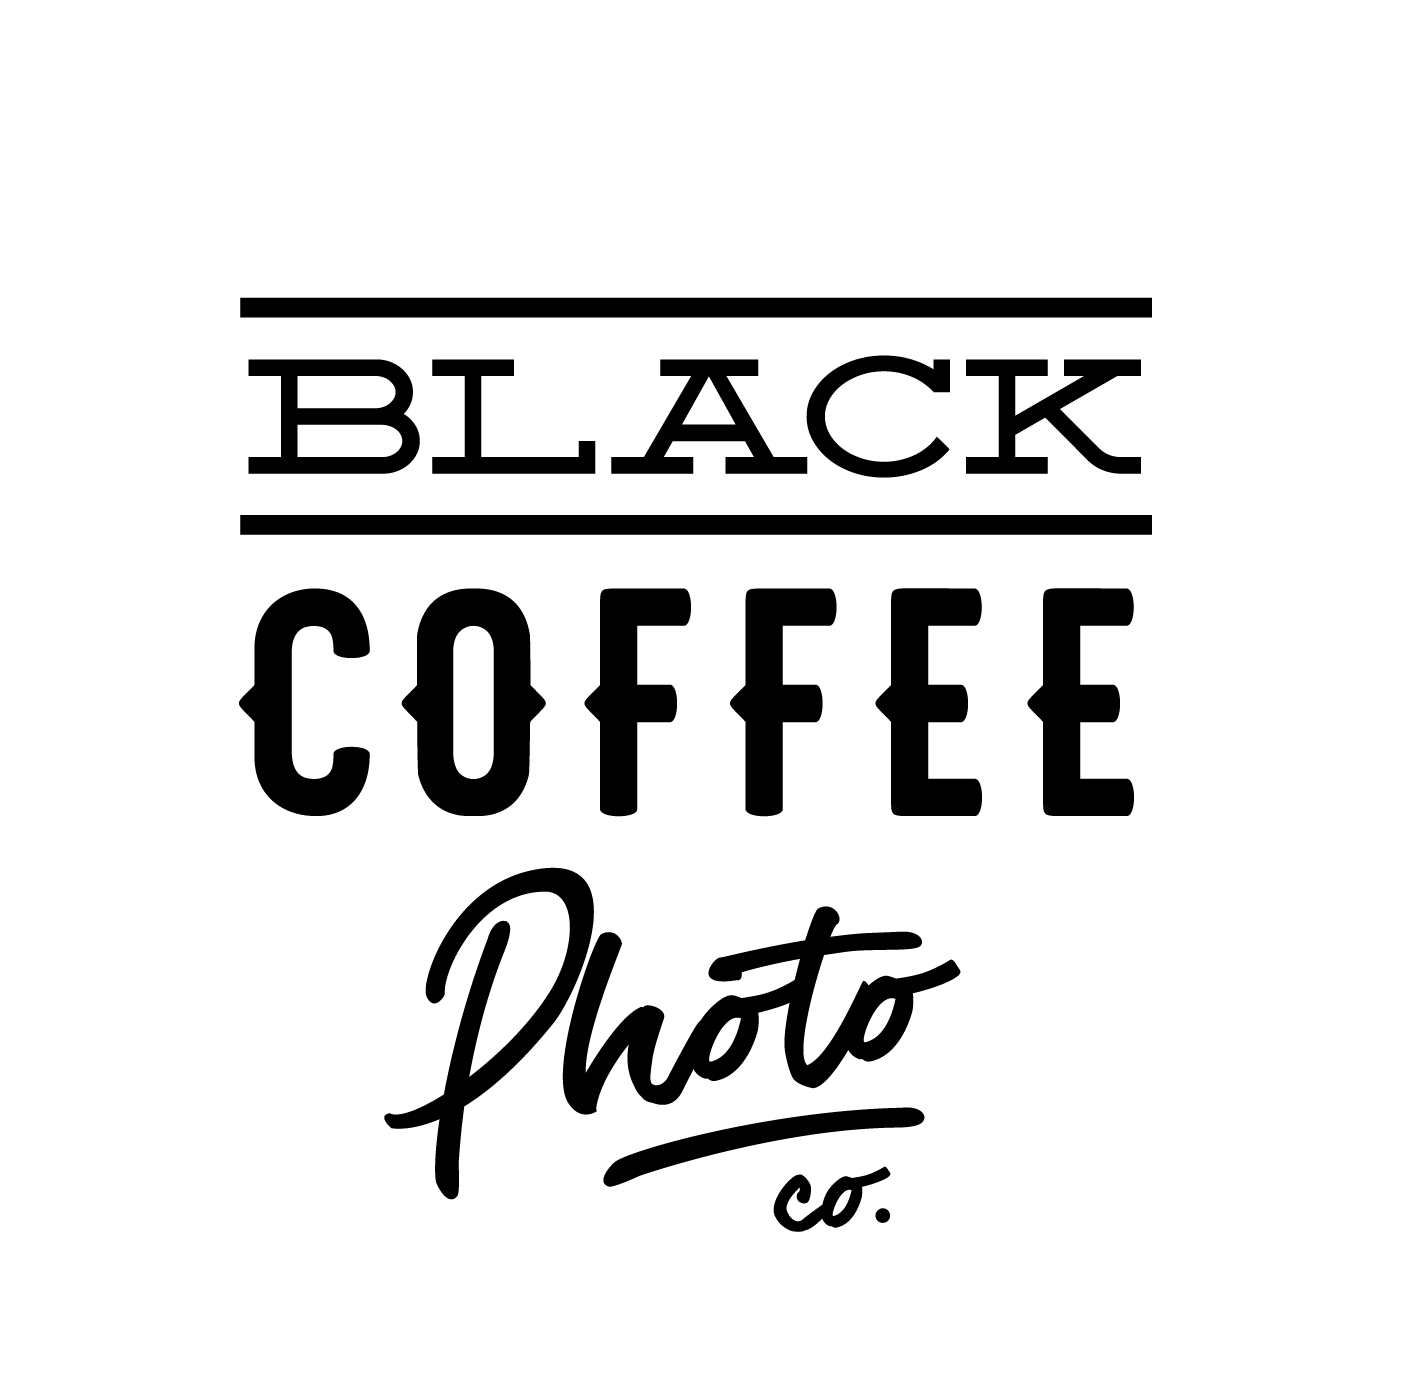 Black Coffee Photo Co.